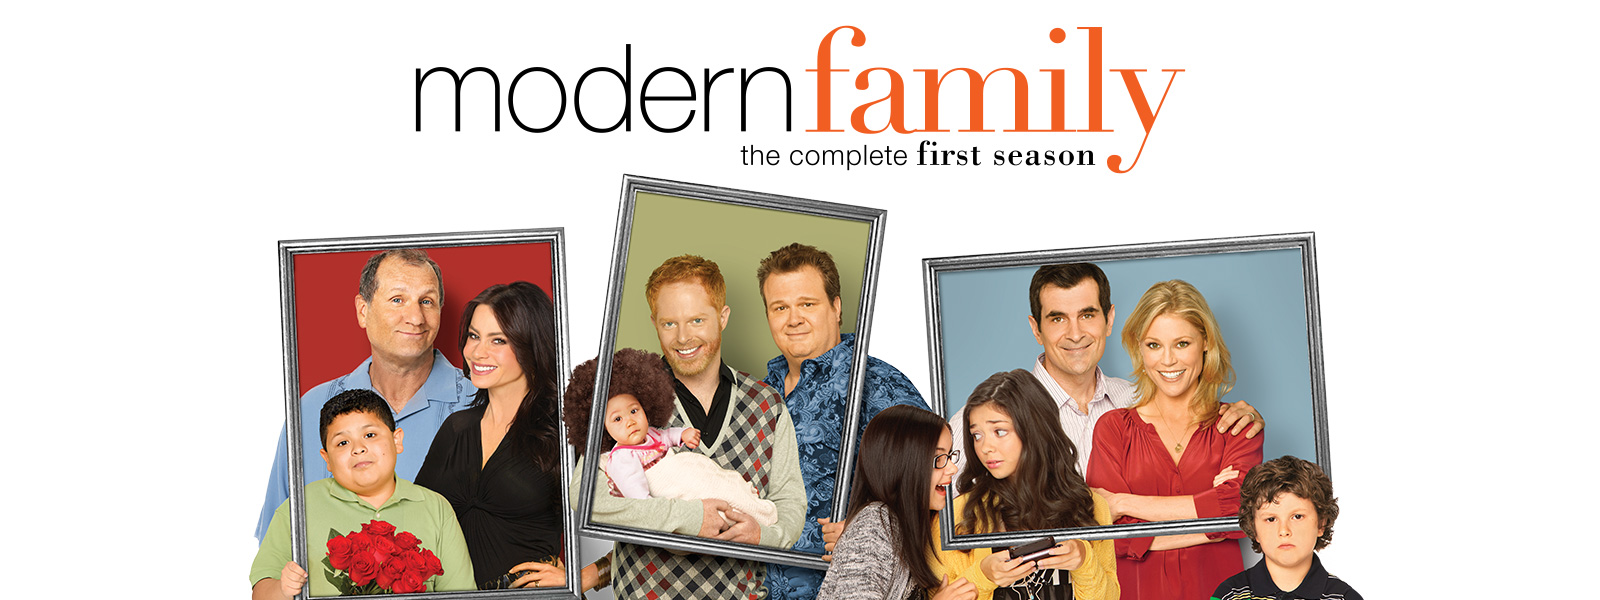 20th century fox uk modern family season 1